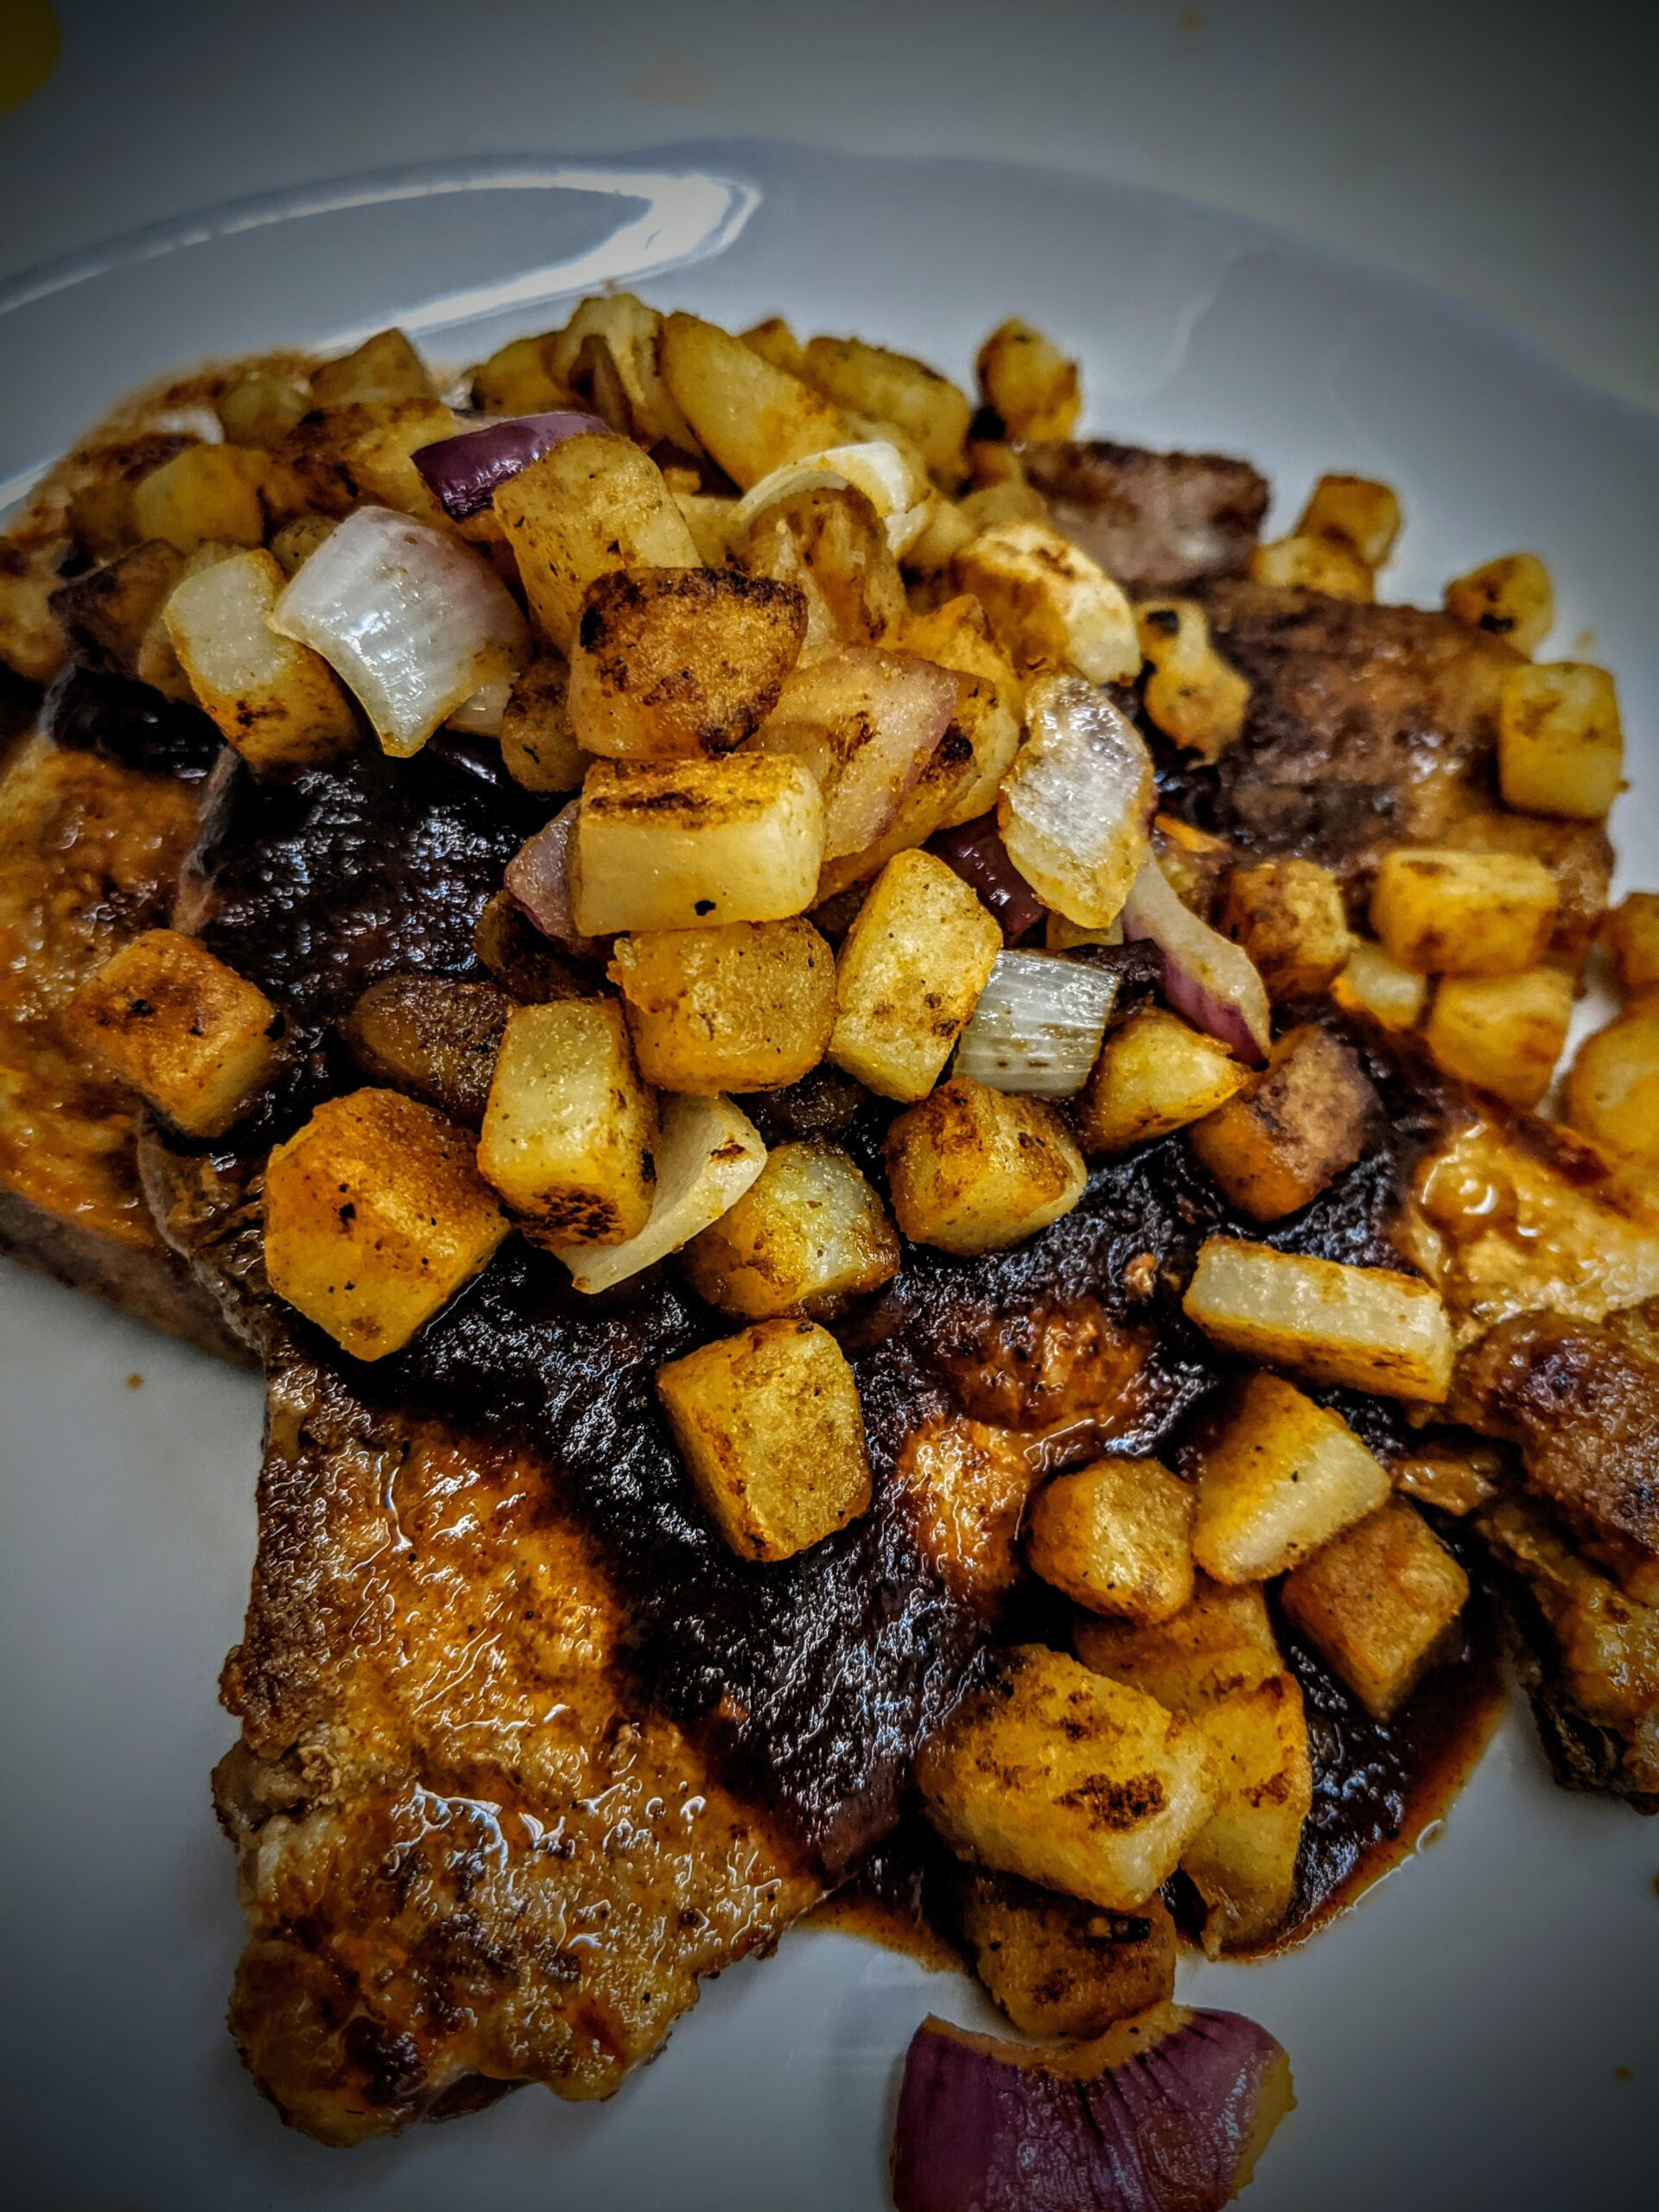 Chile Stewed Pork Chop with Potatoes